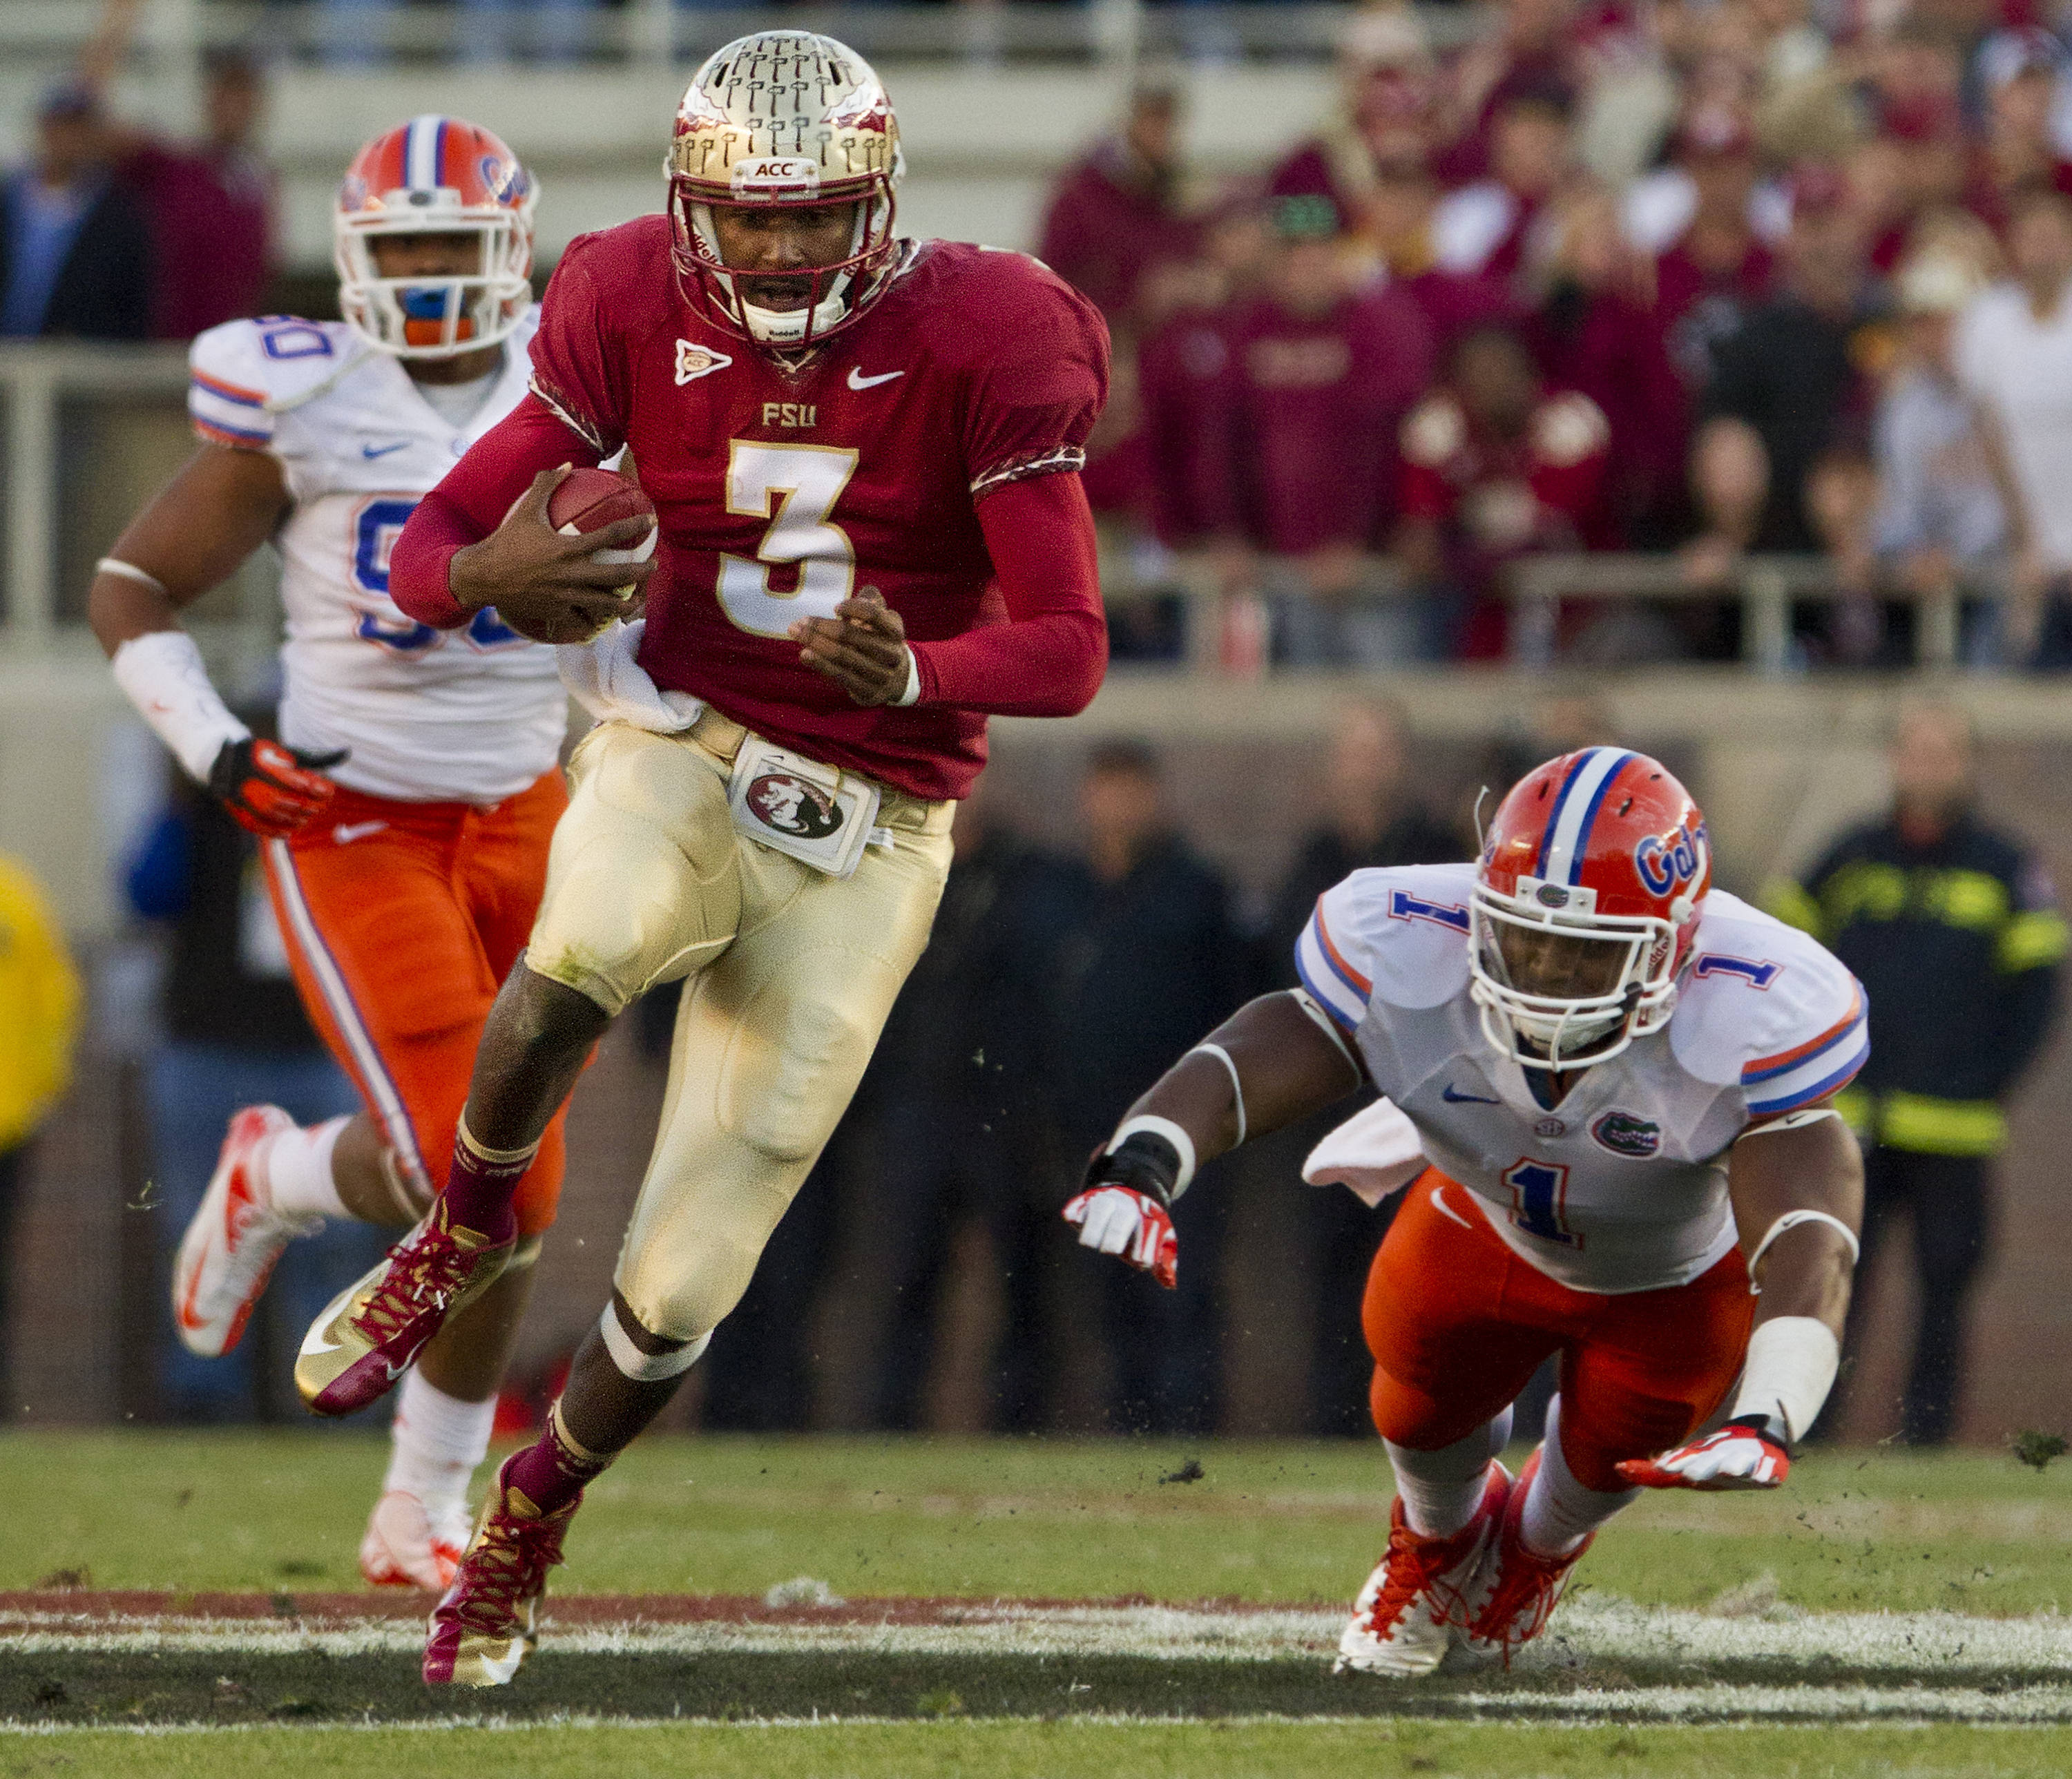 EJ Manuel (3) during FSU Football's game against UF on Saturday, November 24, 2012 in Tallahassee, Fla.